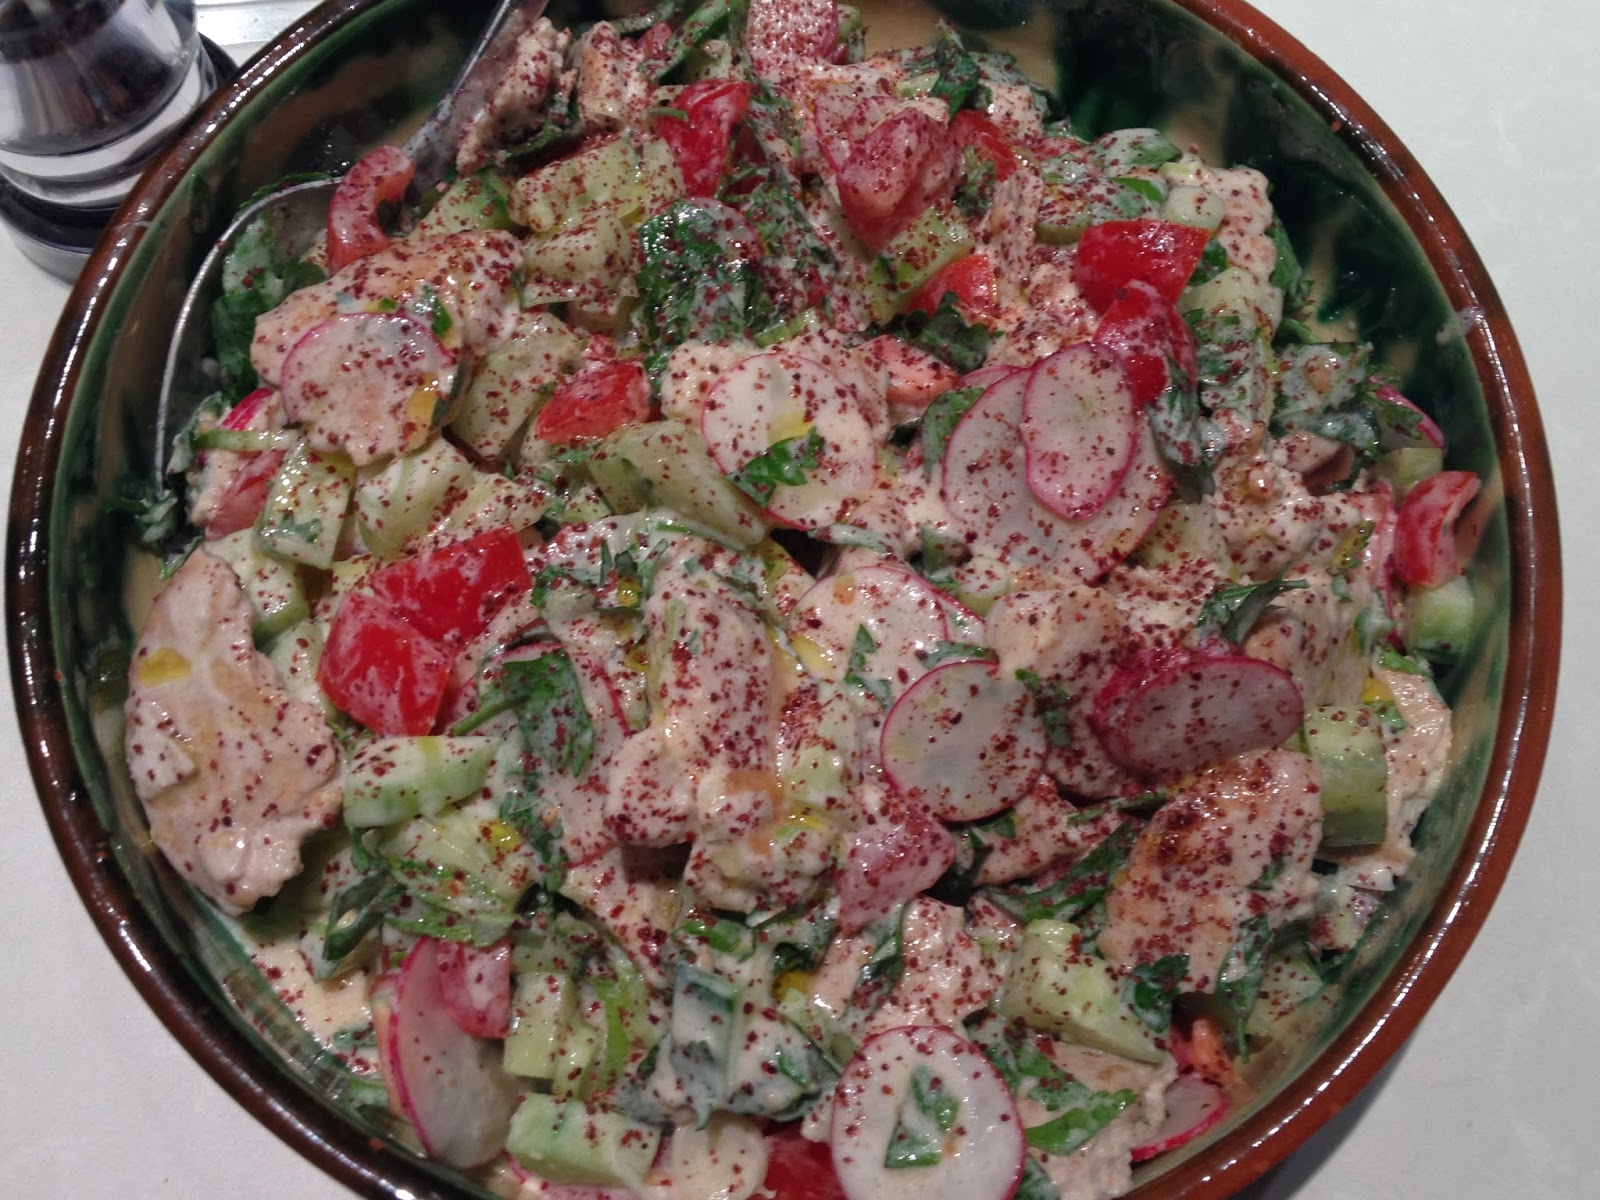 The Family Cook Book: Jerusalem night no.1. Na'ama's Fattoush